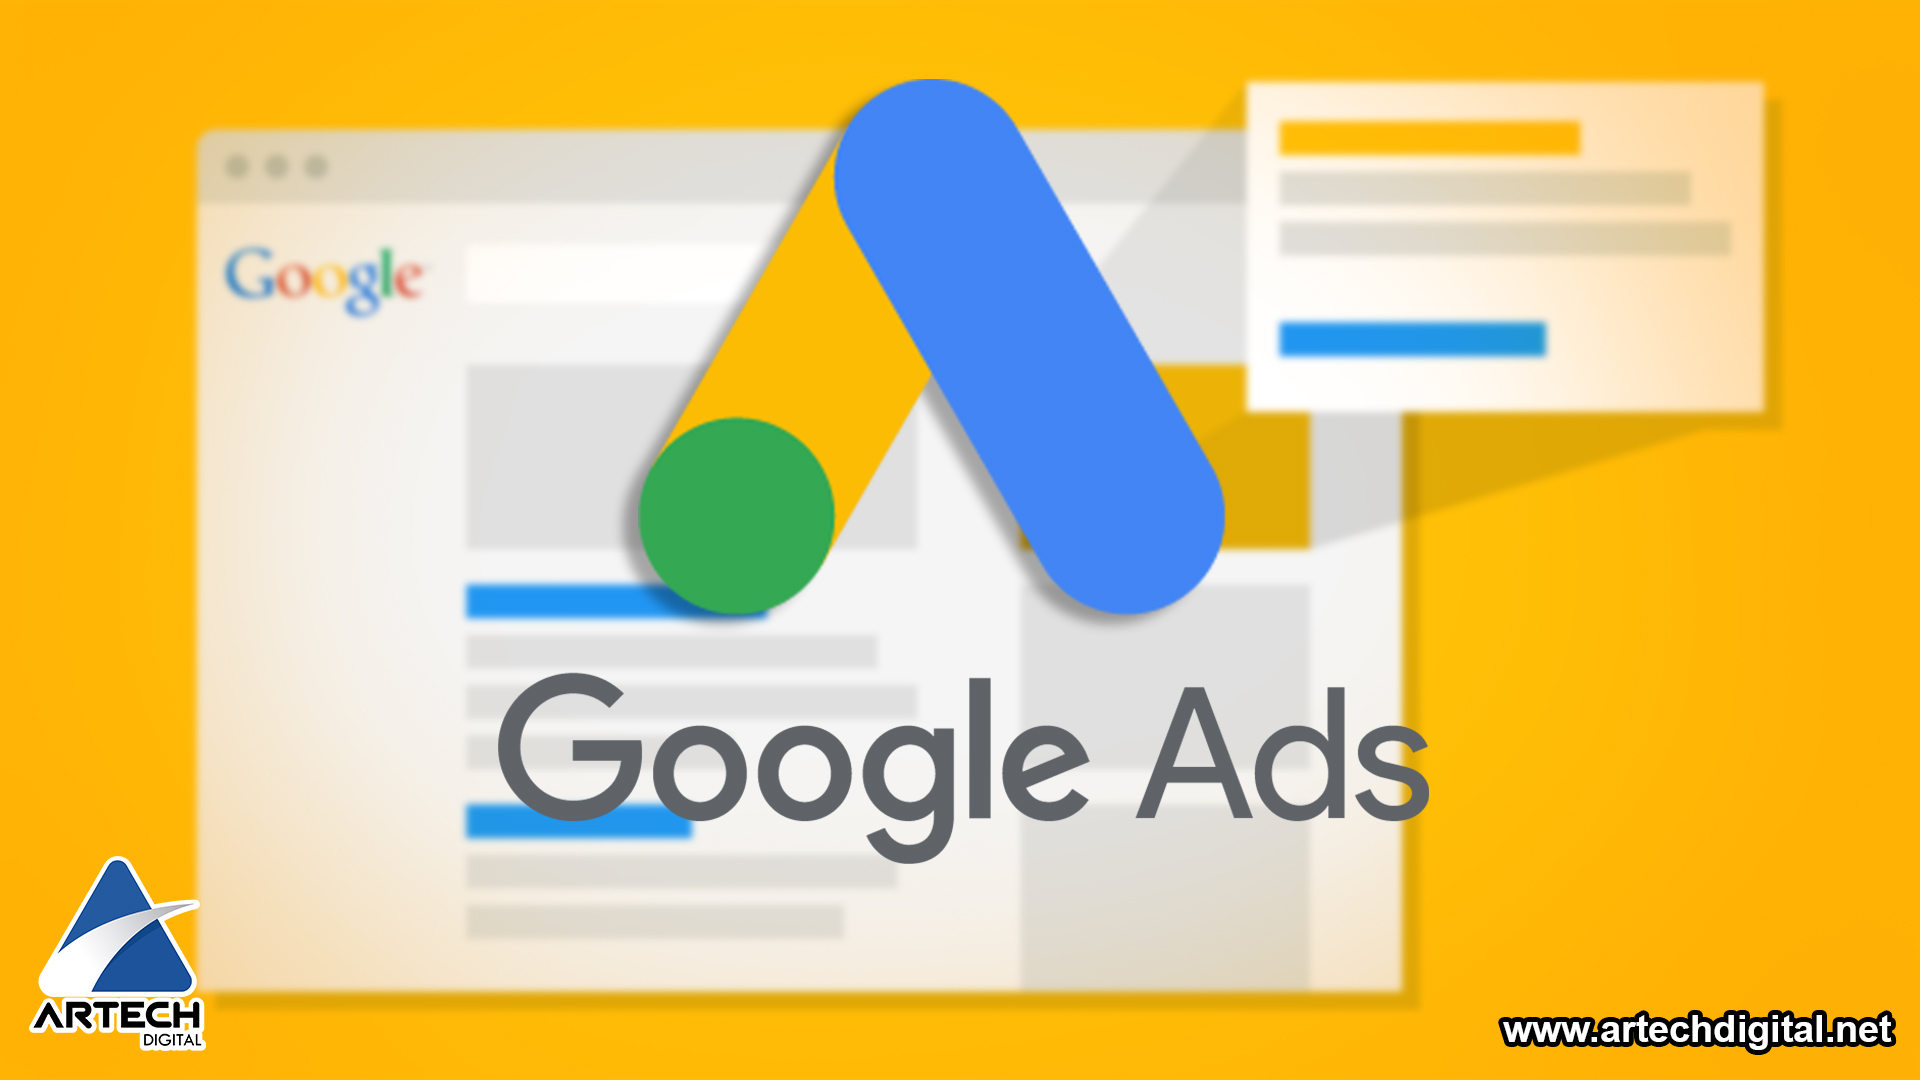 artech digital - GOOGLE ADS